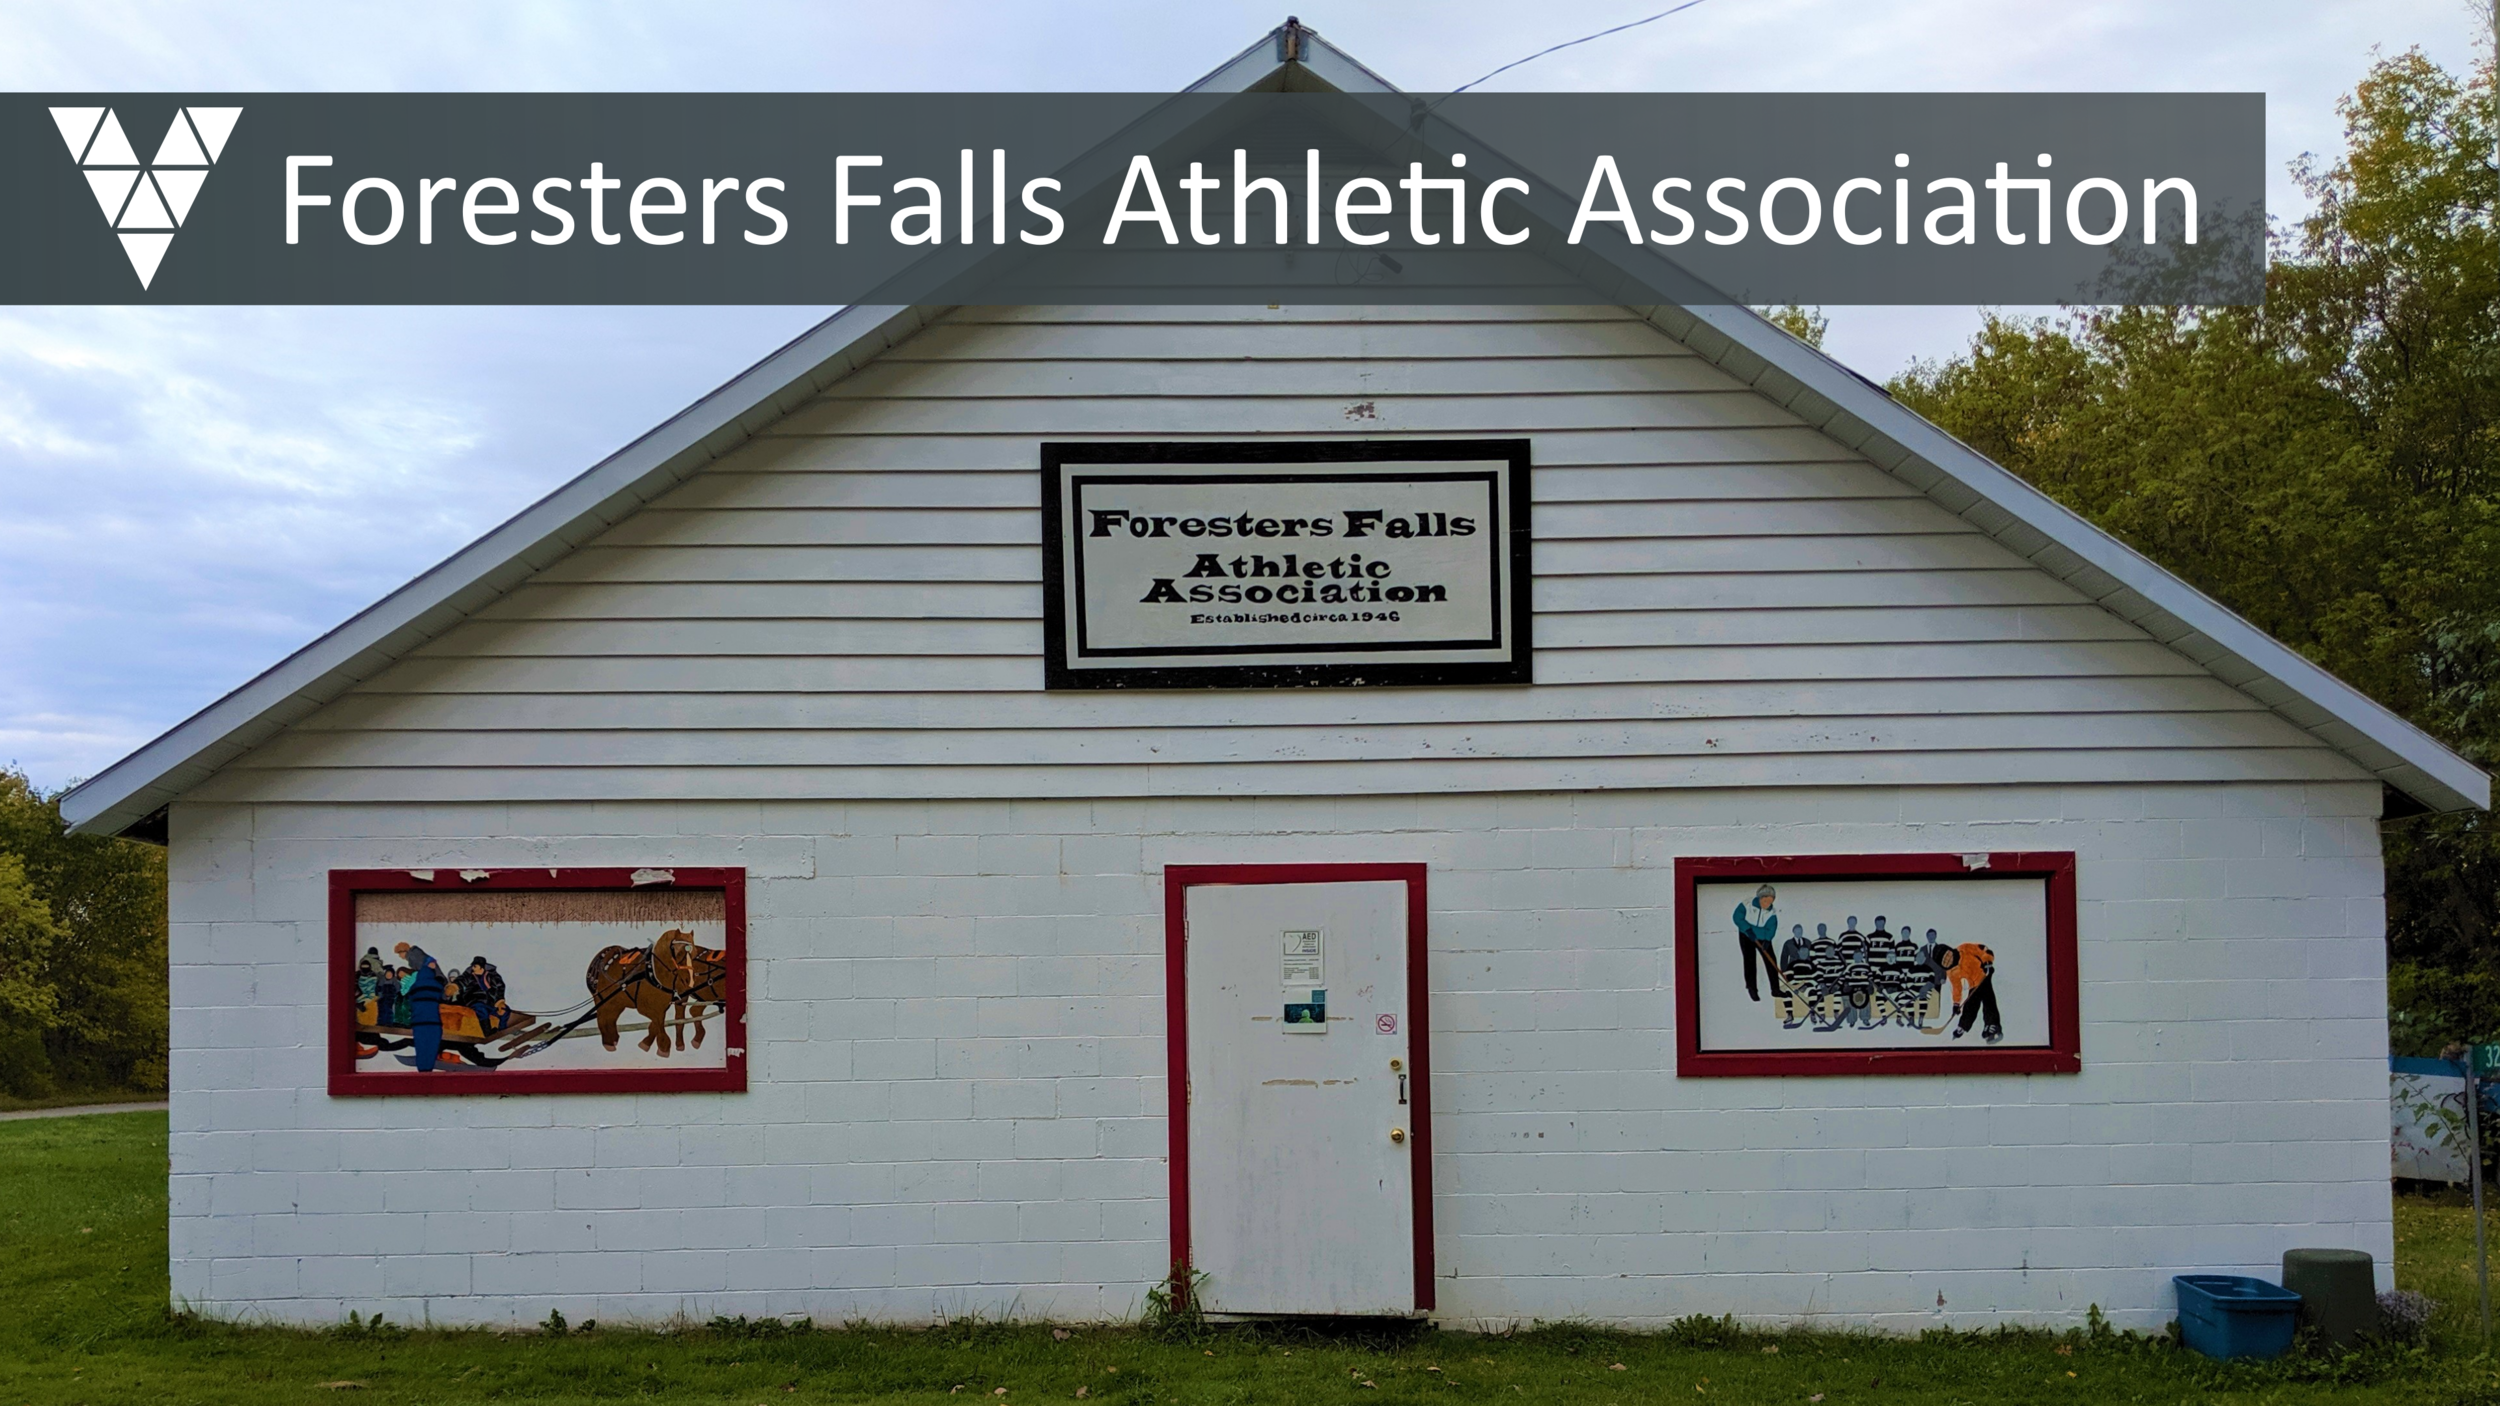 Foresters Falls Athletic Association